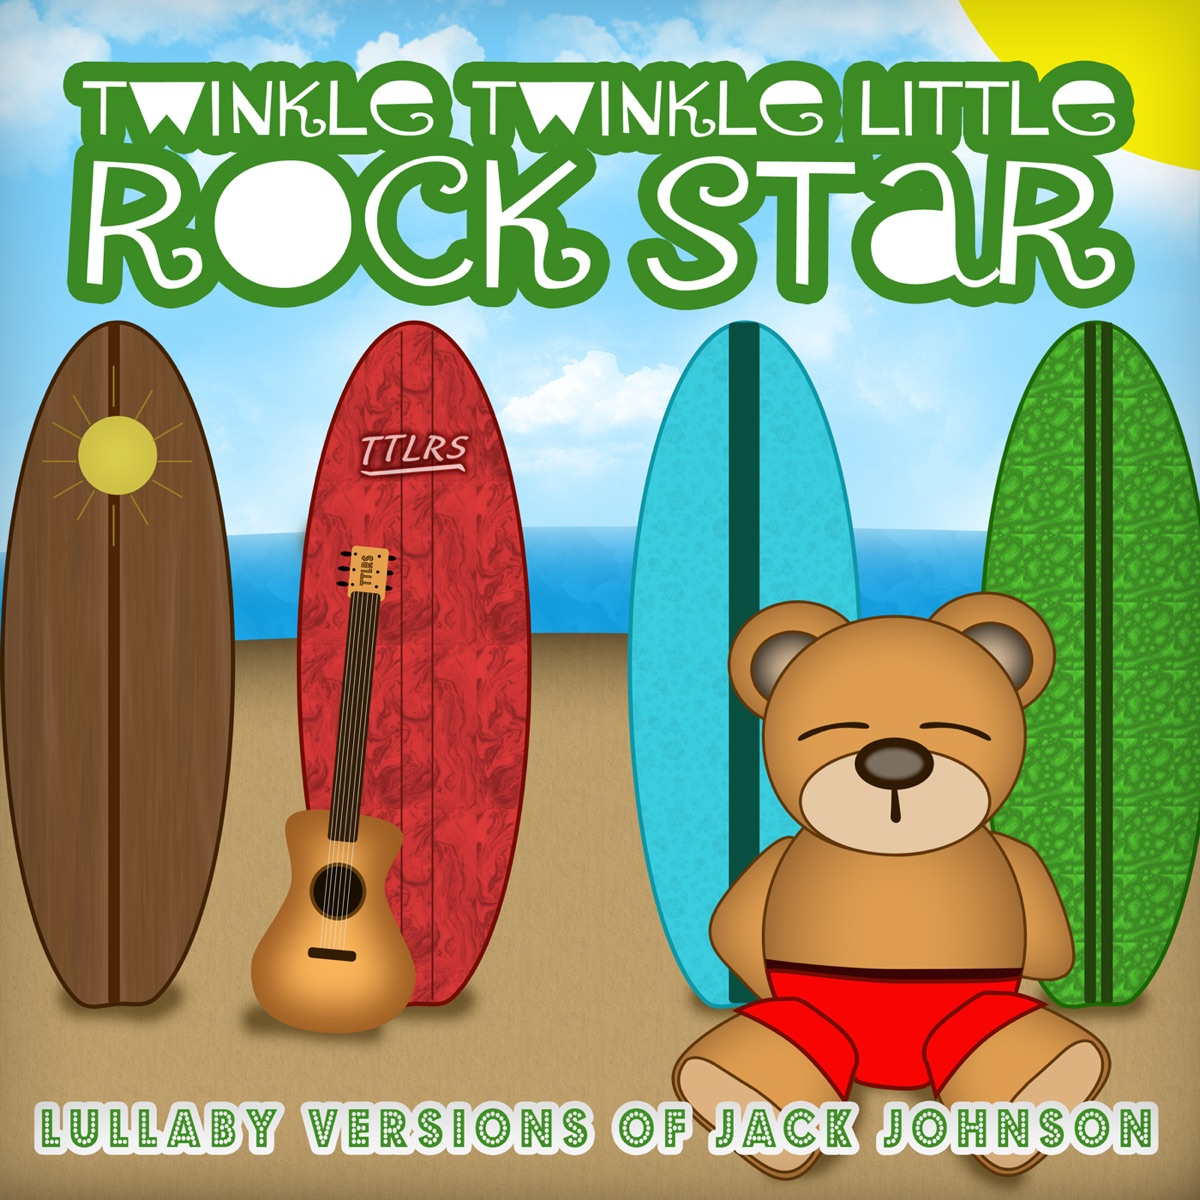 Lullaby Versions of Jack Johnson Twinkle Twinkle Little Rock Star CD cover